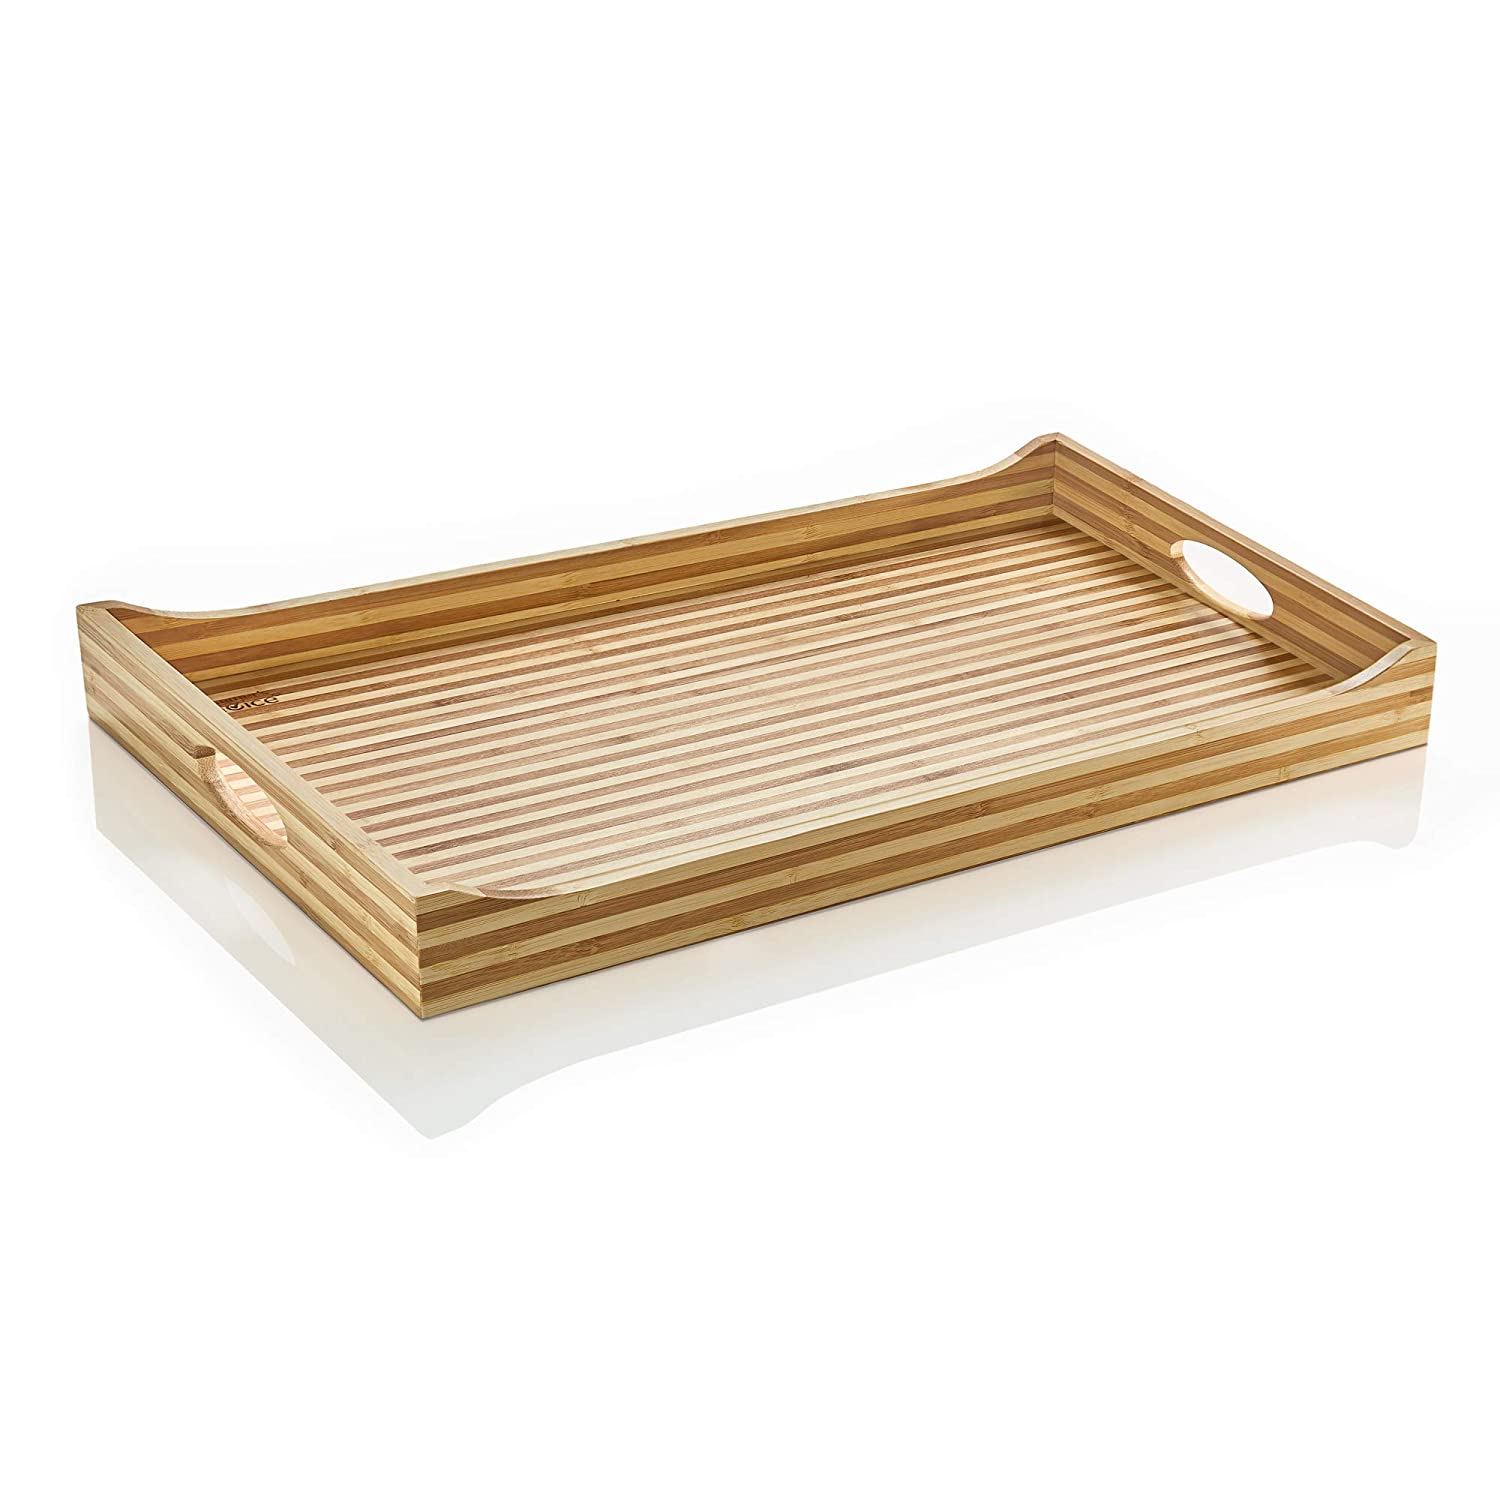 Prosumer's Choice Luxury Two Tone Bamboo Serving Tray With Built-In Handles Aleratec